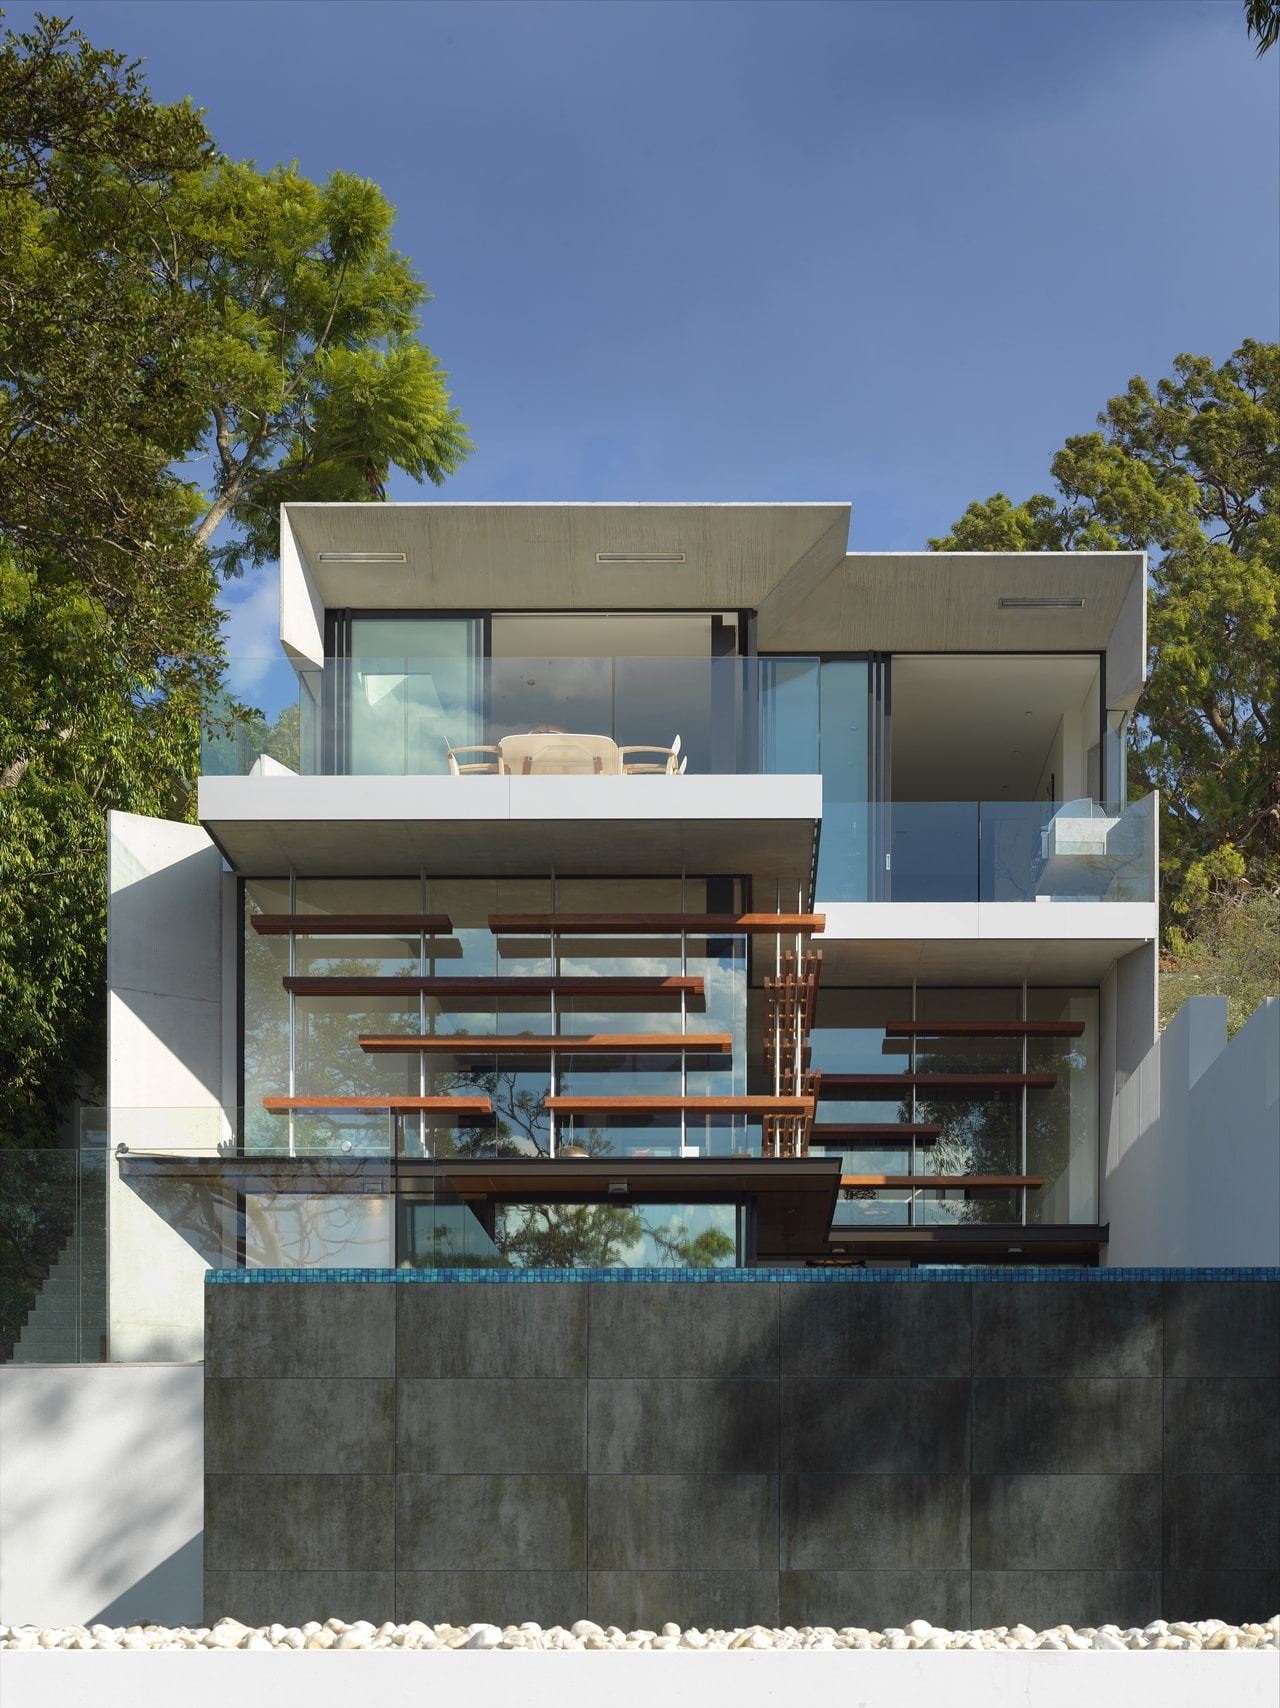 This sustainable house design on sloped land is lesson on modern living Architecture Beast 12 1